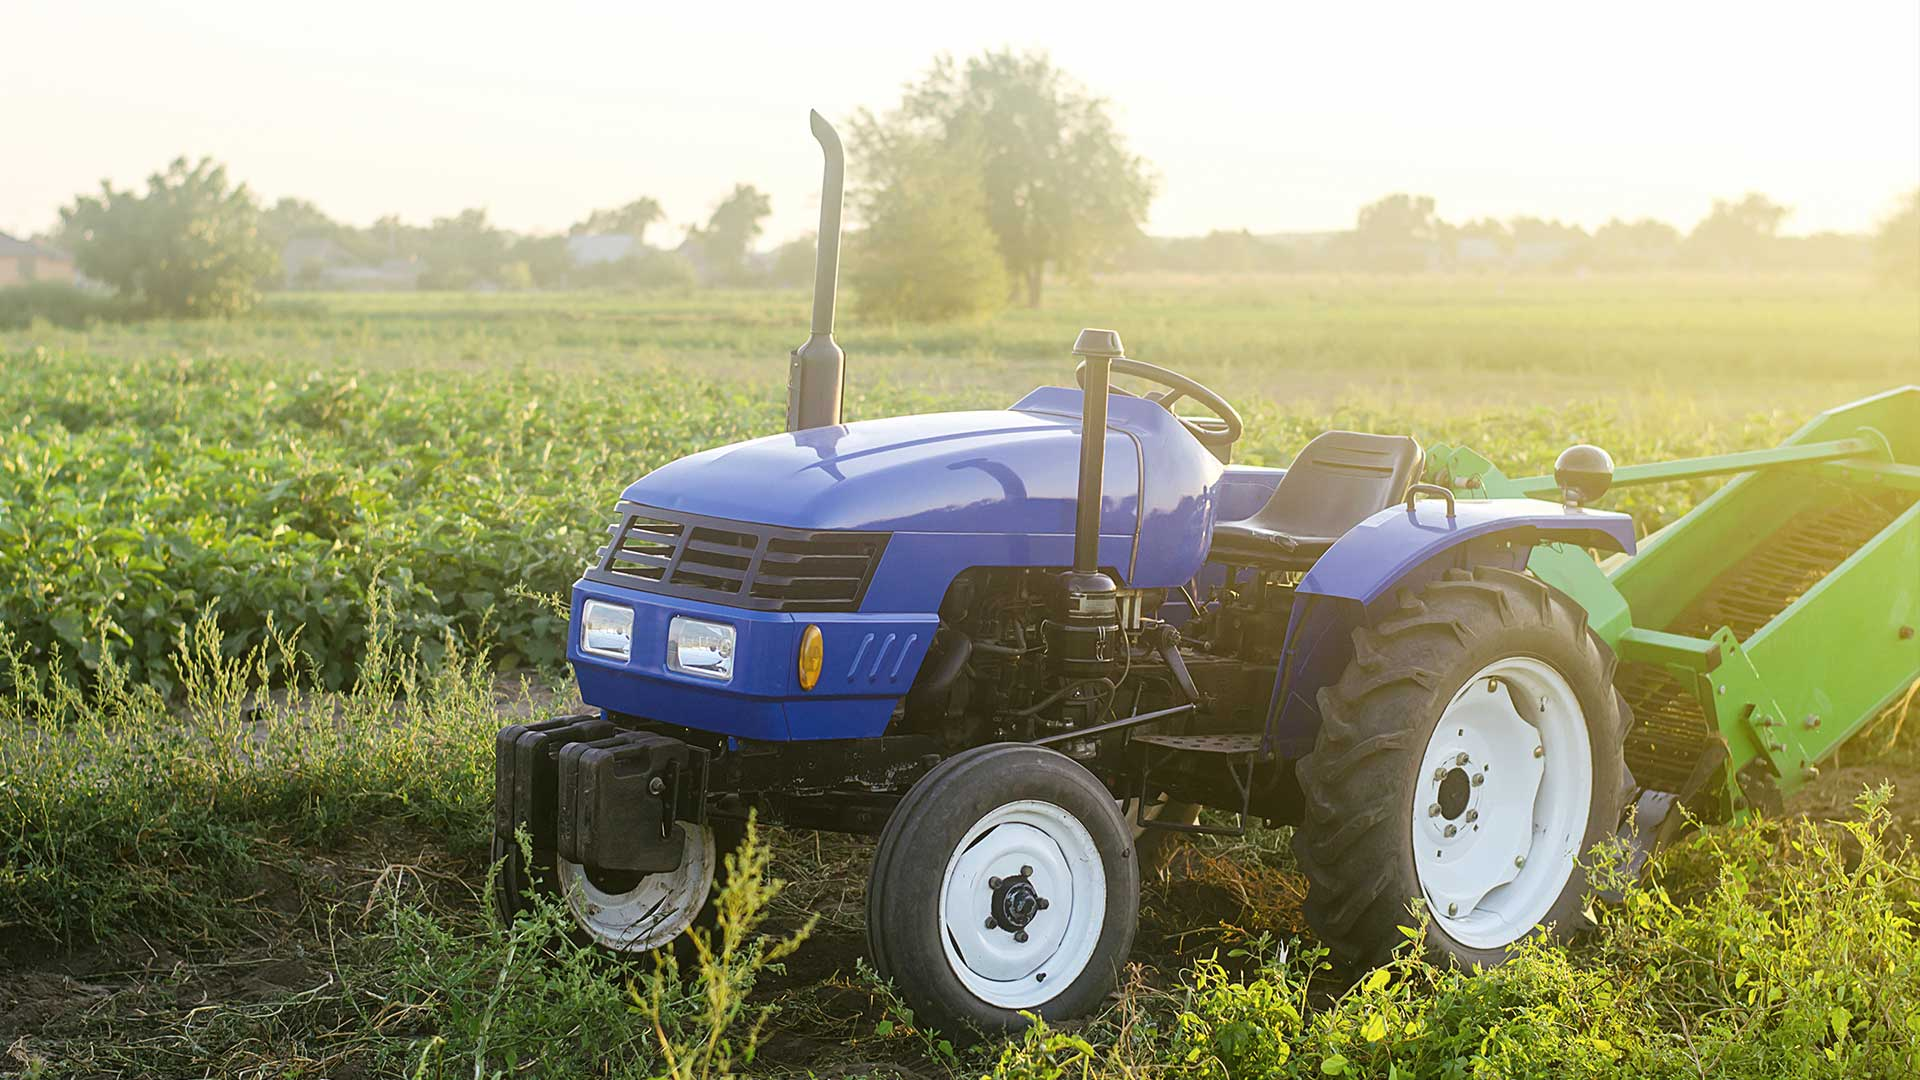 A farm blue tractor stands on the field. The use of machines in agriculture increases the speed and efficiency of work. Farming and farmland. Harvesting potatoes in autumn. Countryside.